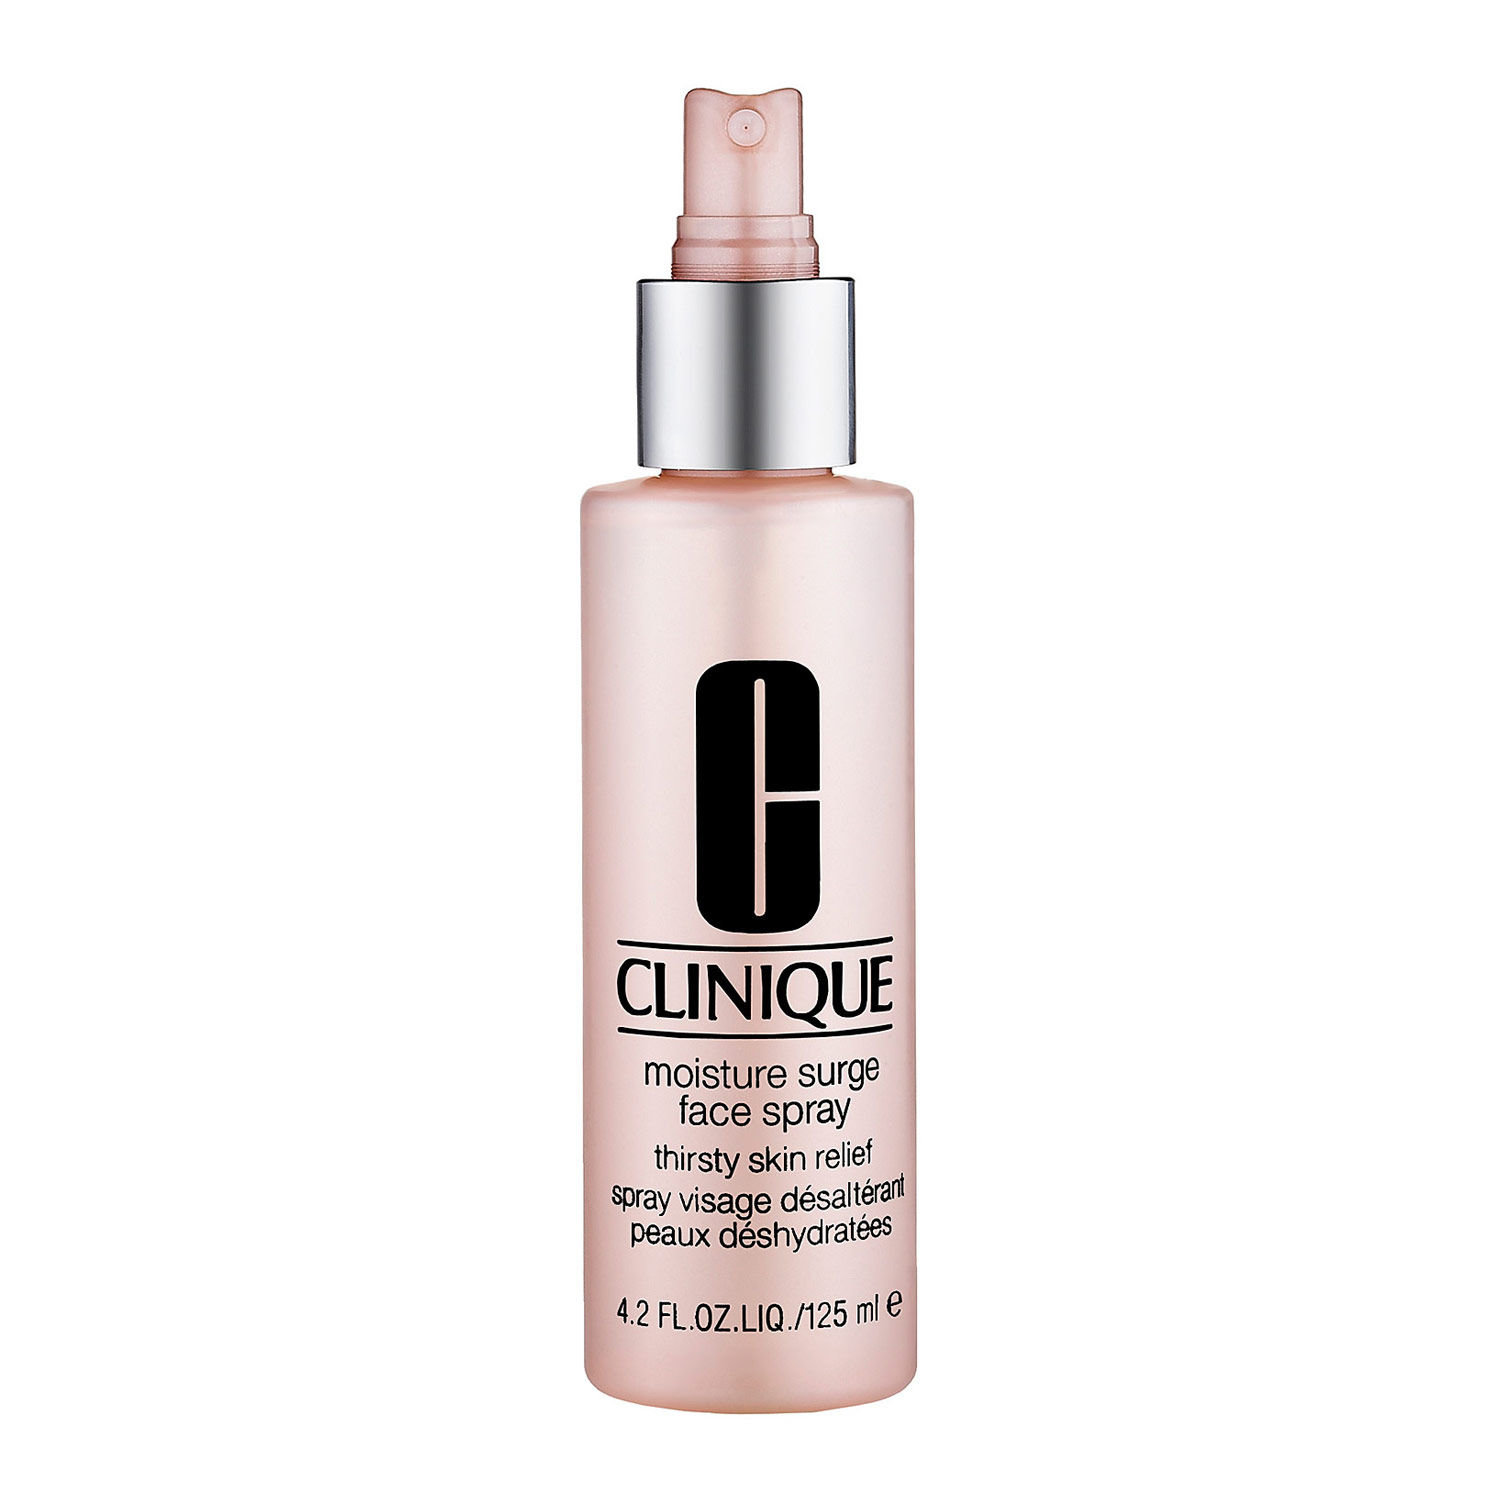 Clinique Moisture Surge Cosmetic 125ml